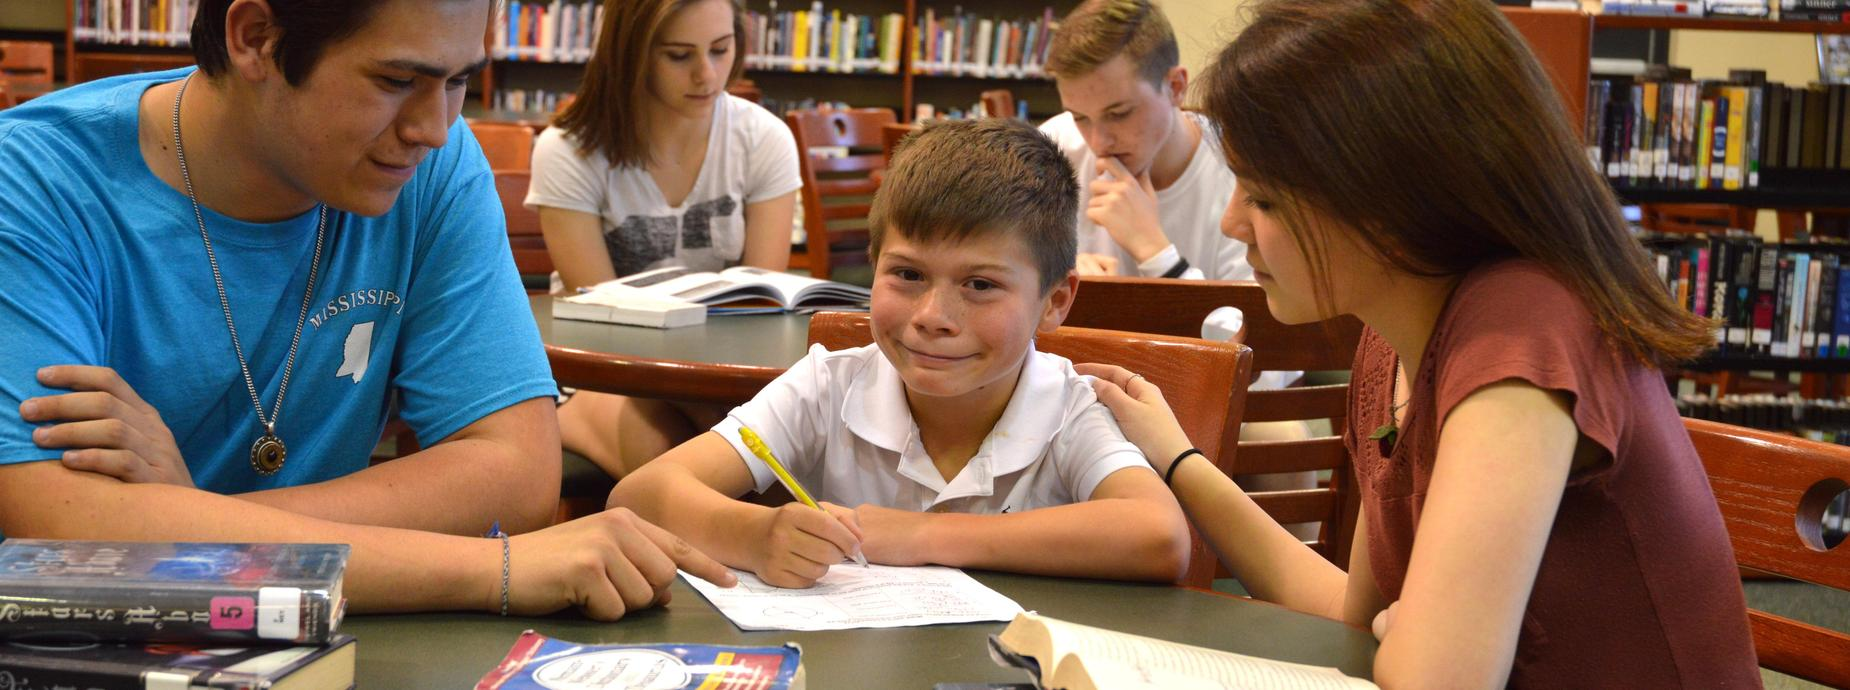 High School students helping elementary student with homework